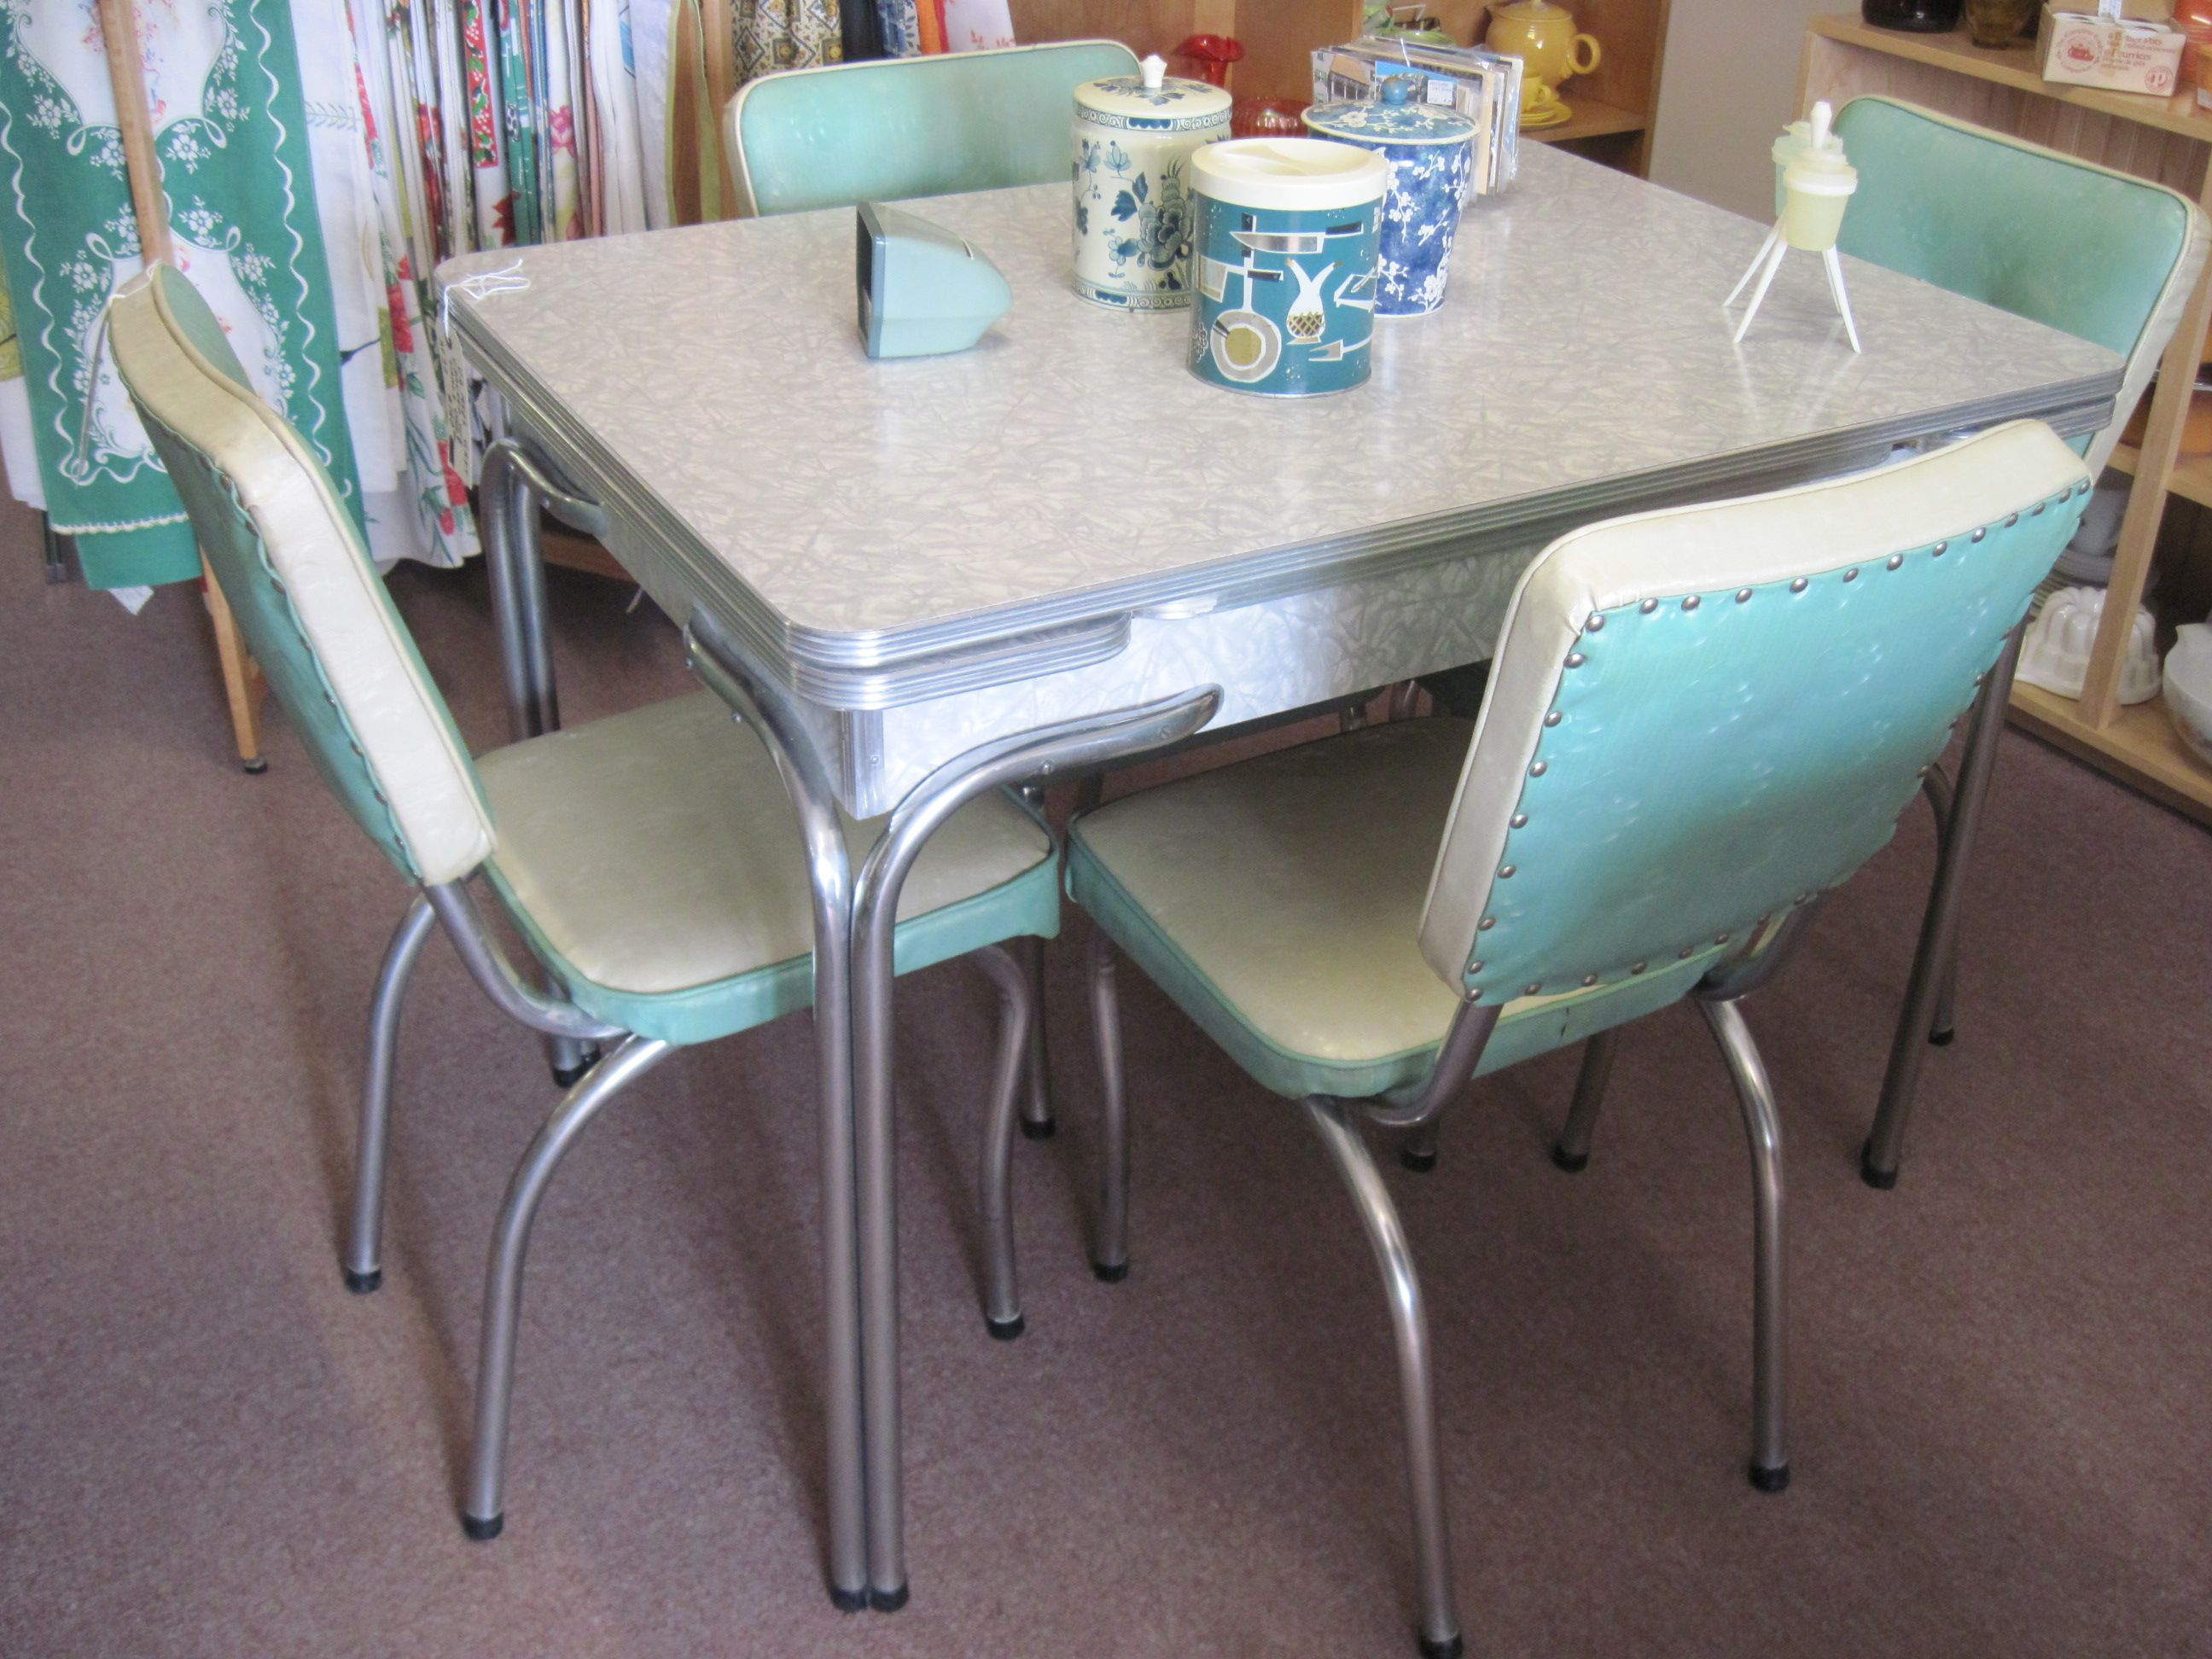 Chrome Dinette Chairs cracked ice table and chairs | vintage kitchen | pinterest